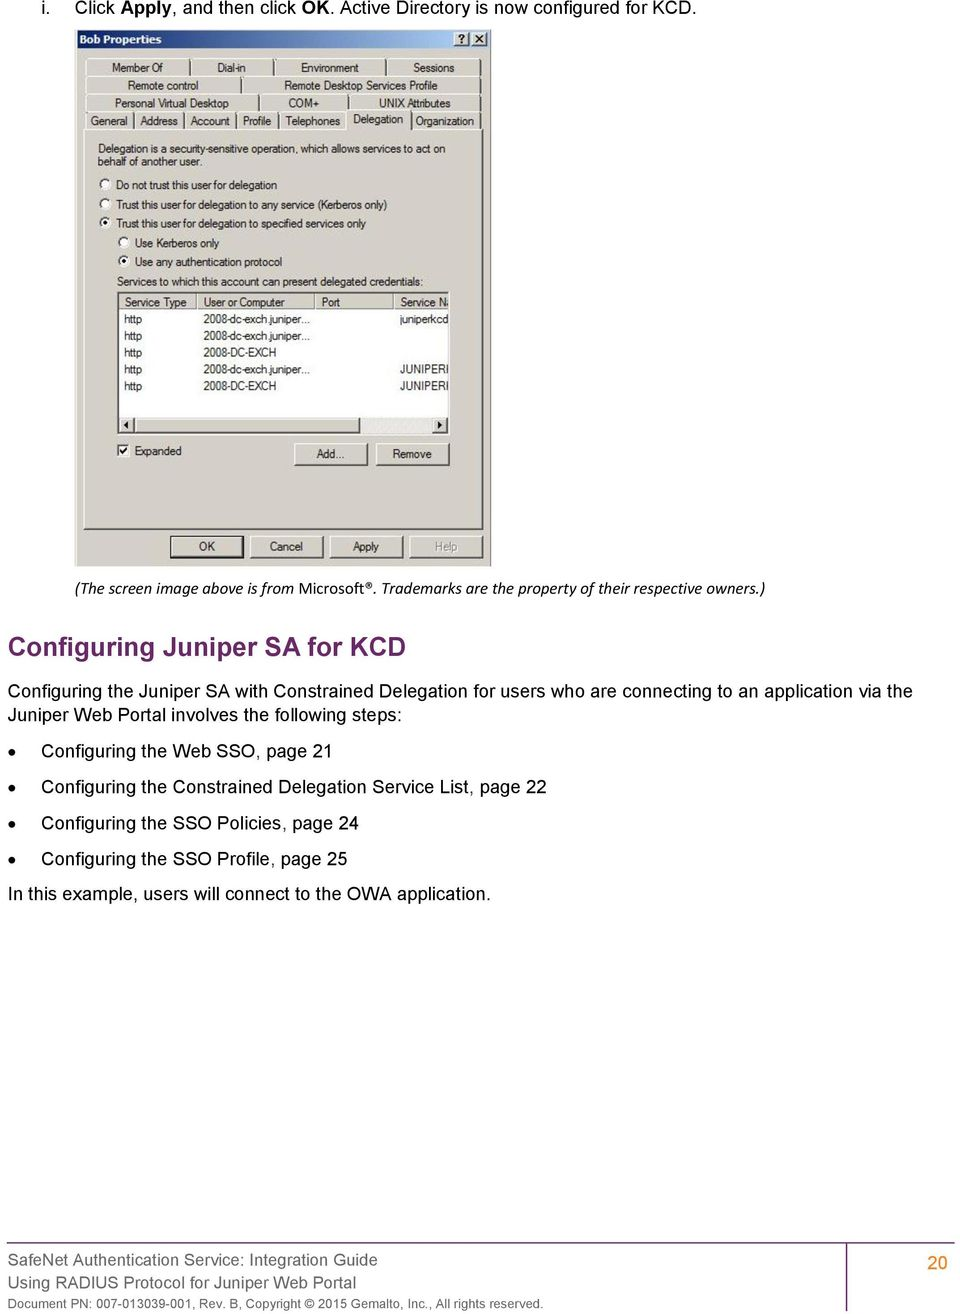 ) Configuring Juniper SA for KCD Configuring the Juniper SA with Constrained Delegation for users who are connecting to an application via the